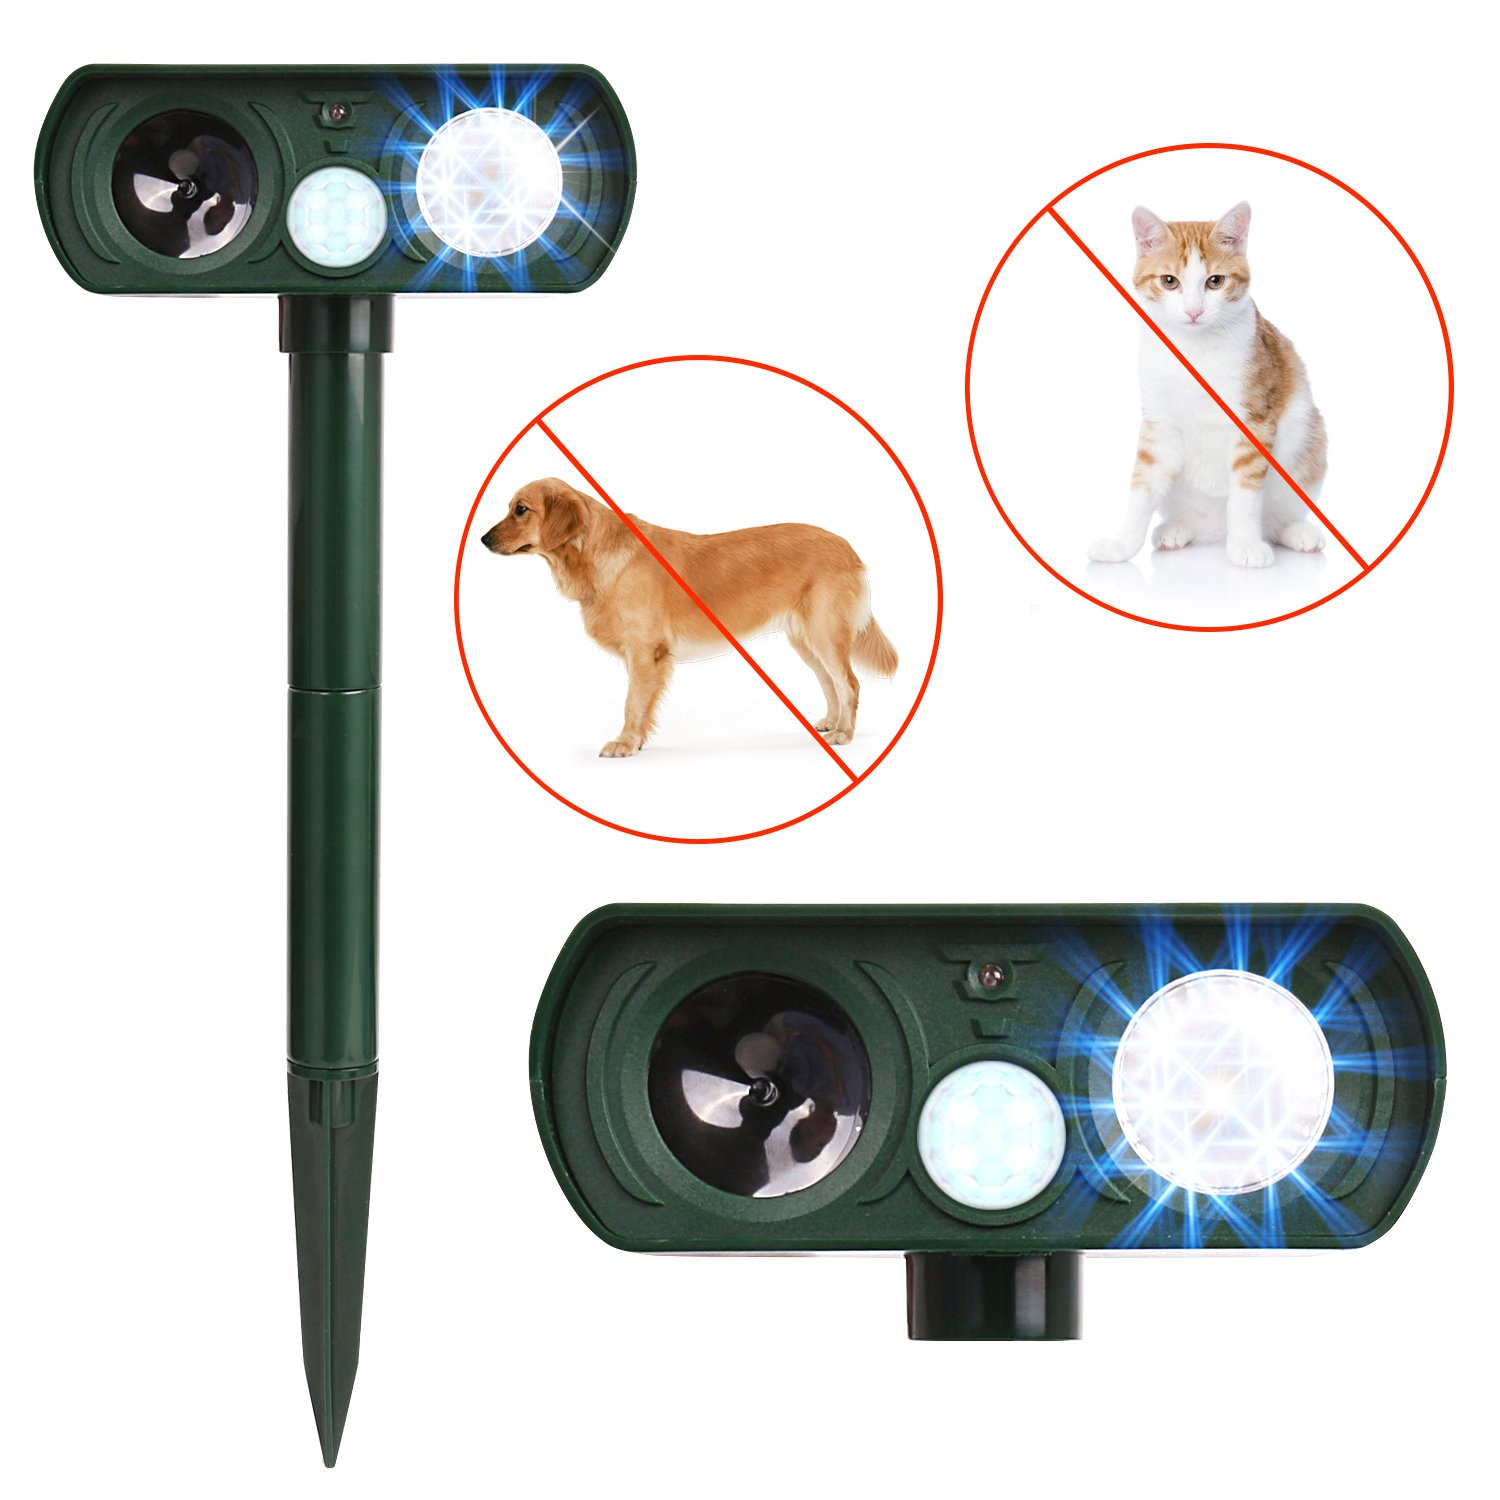 APlus+ Dog Cat Repellent, Ultrasonic Pest Repellent with Motion Sensor and Flashing lights Outdoor Solar Powered Waterproof Farm Garden Yard repellent, Cats, Dogs, Foxes, Birds, Skunks, Rod